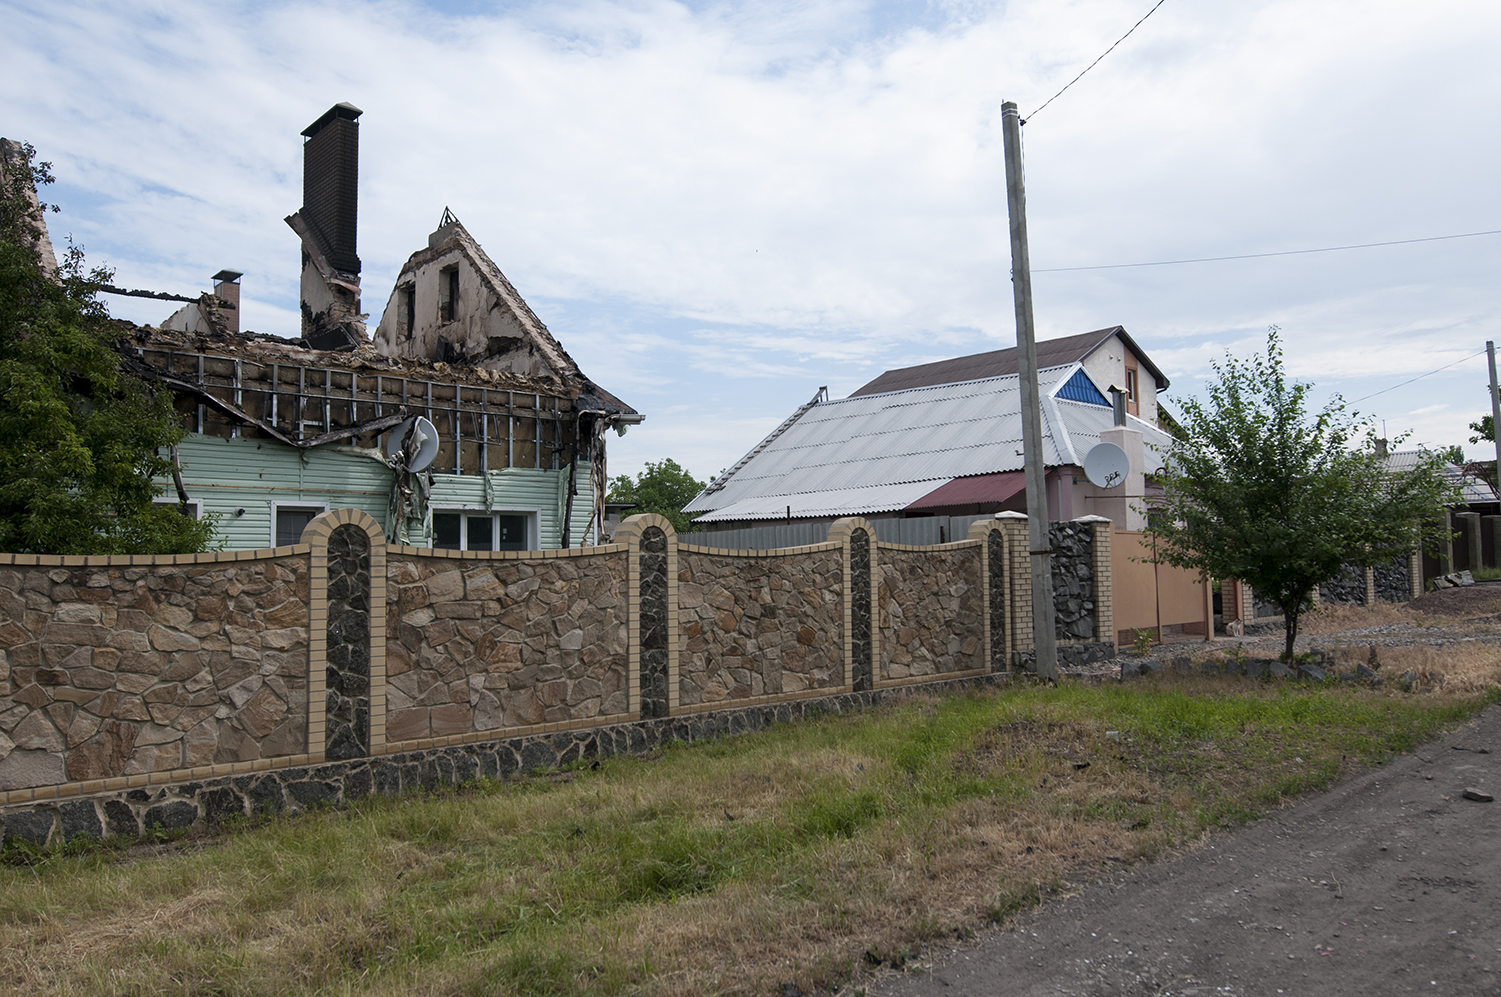 Bombed house located between theSergey Prokofiev Airport and the Train Station